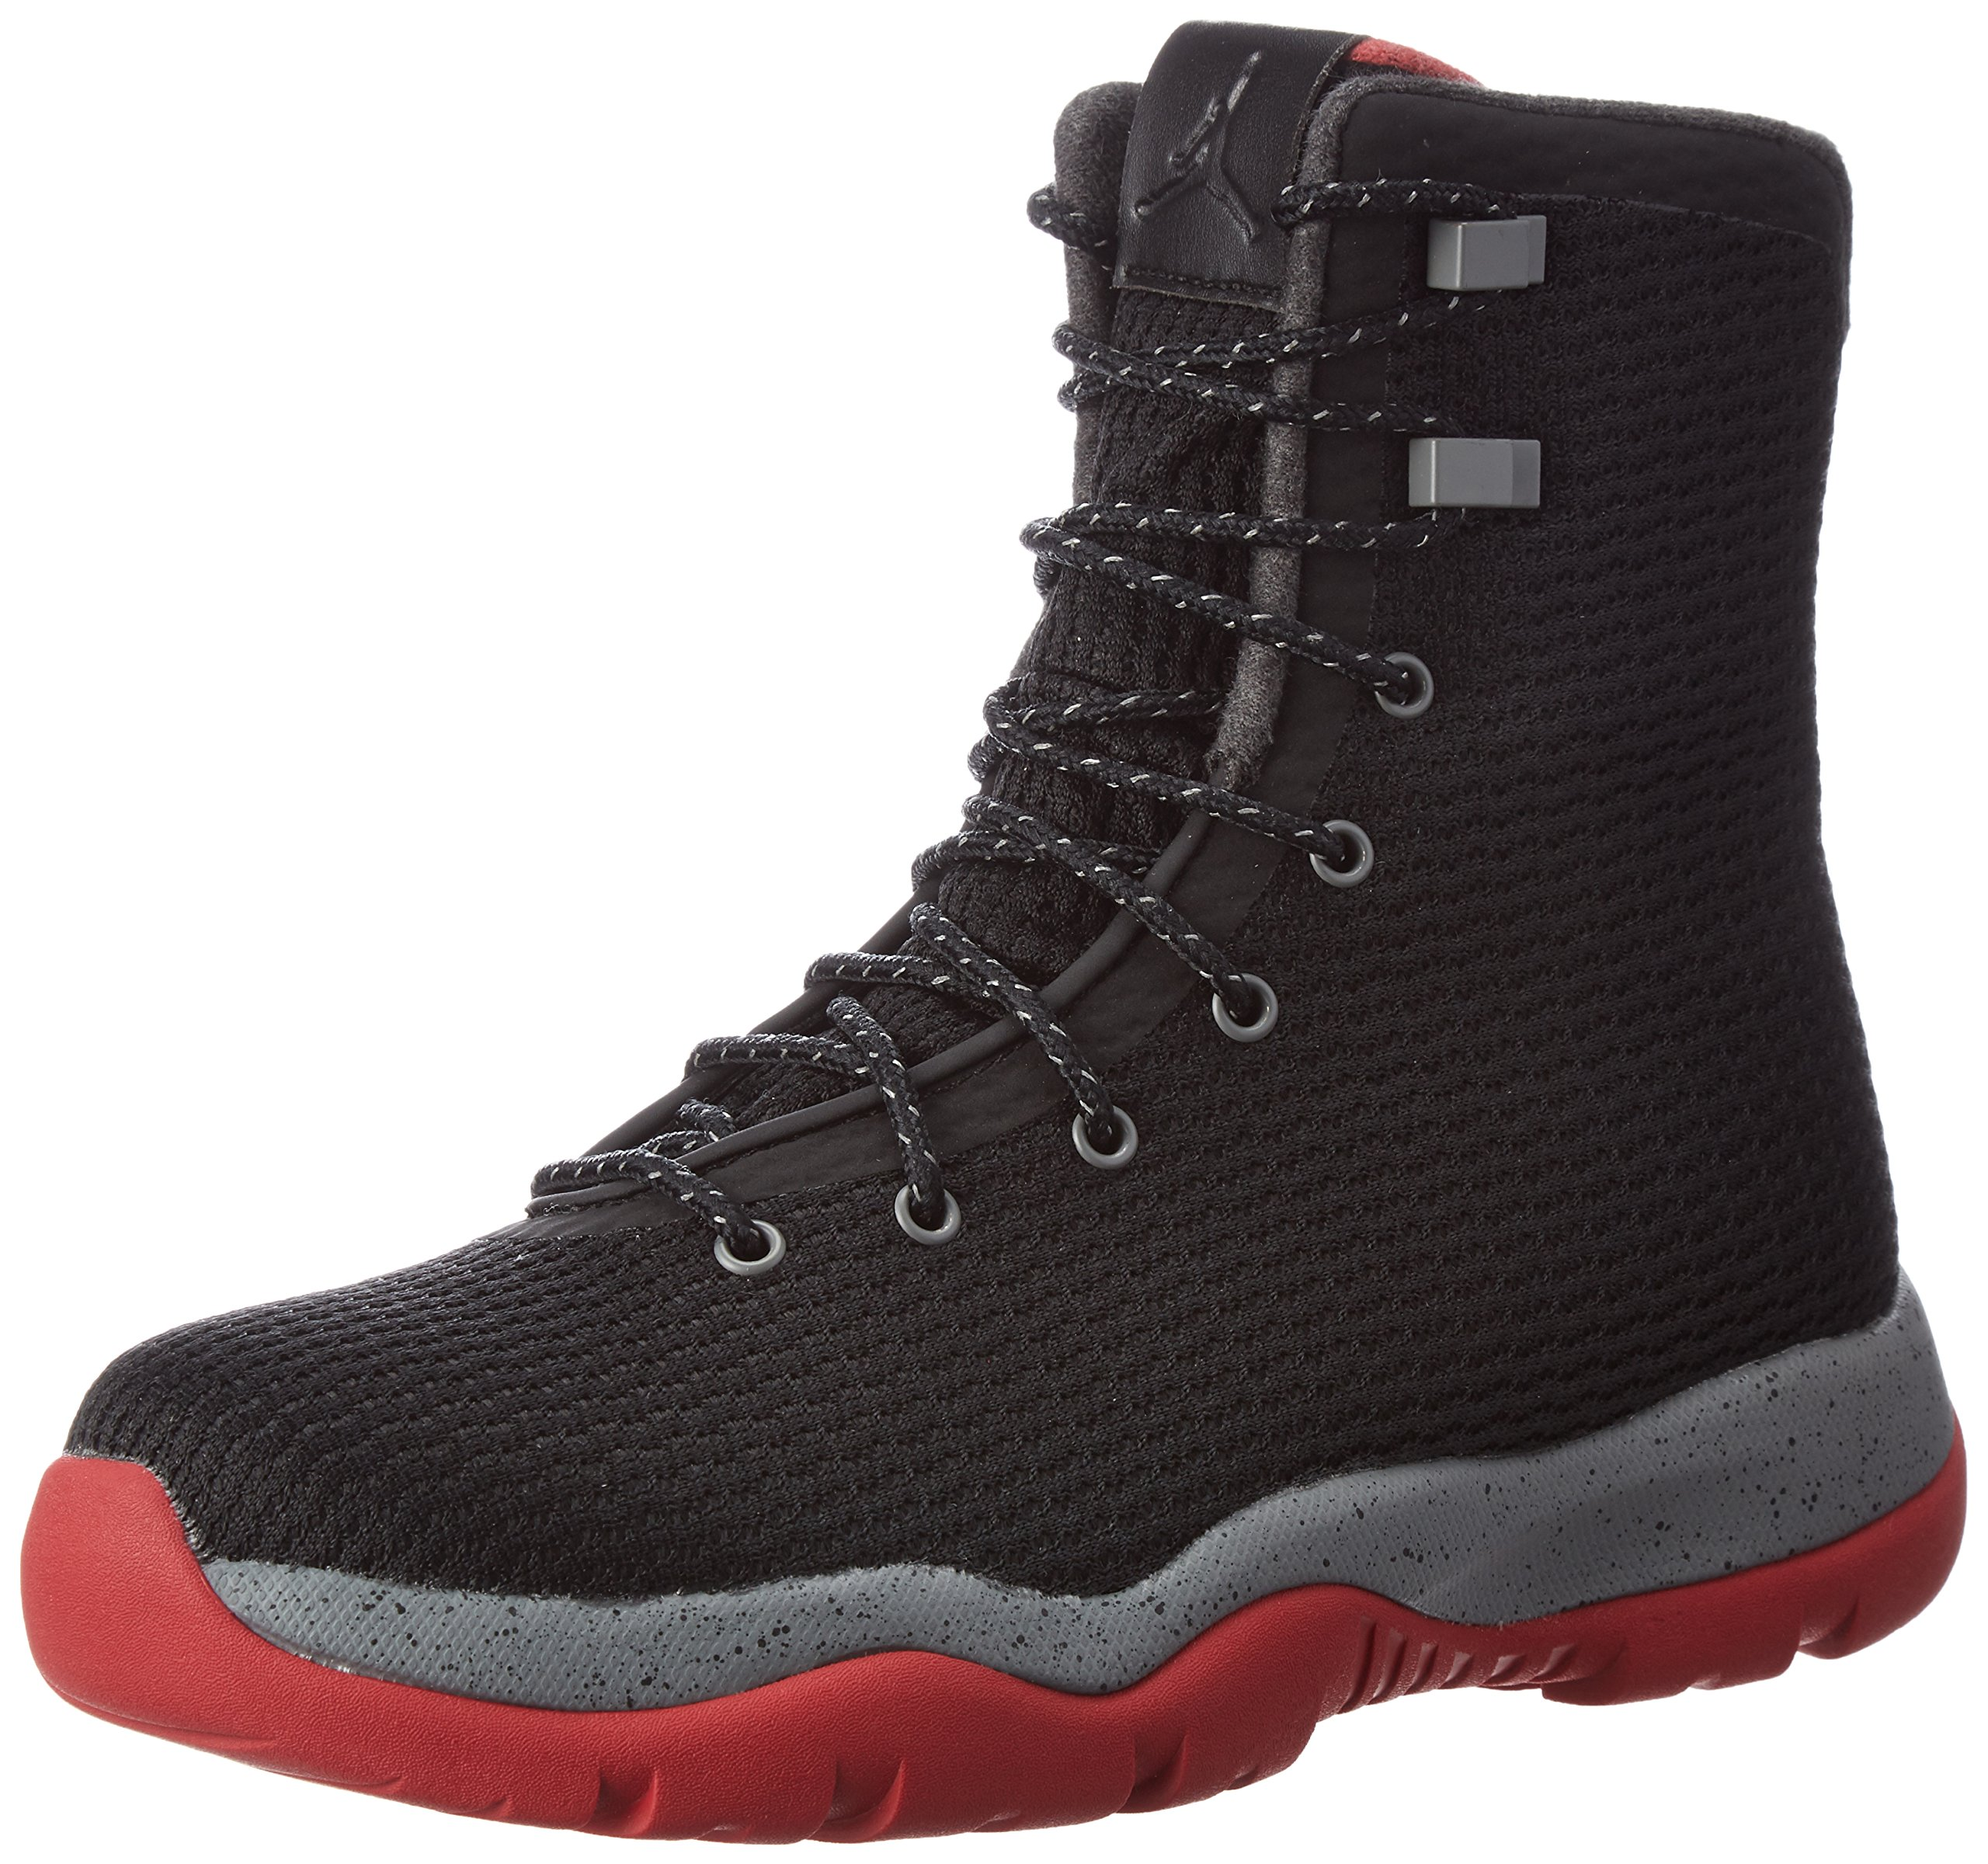 Nike Mens Jordan Future Boot Black/Red-Grey Fabric Size 10 by Jordan